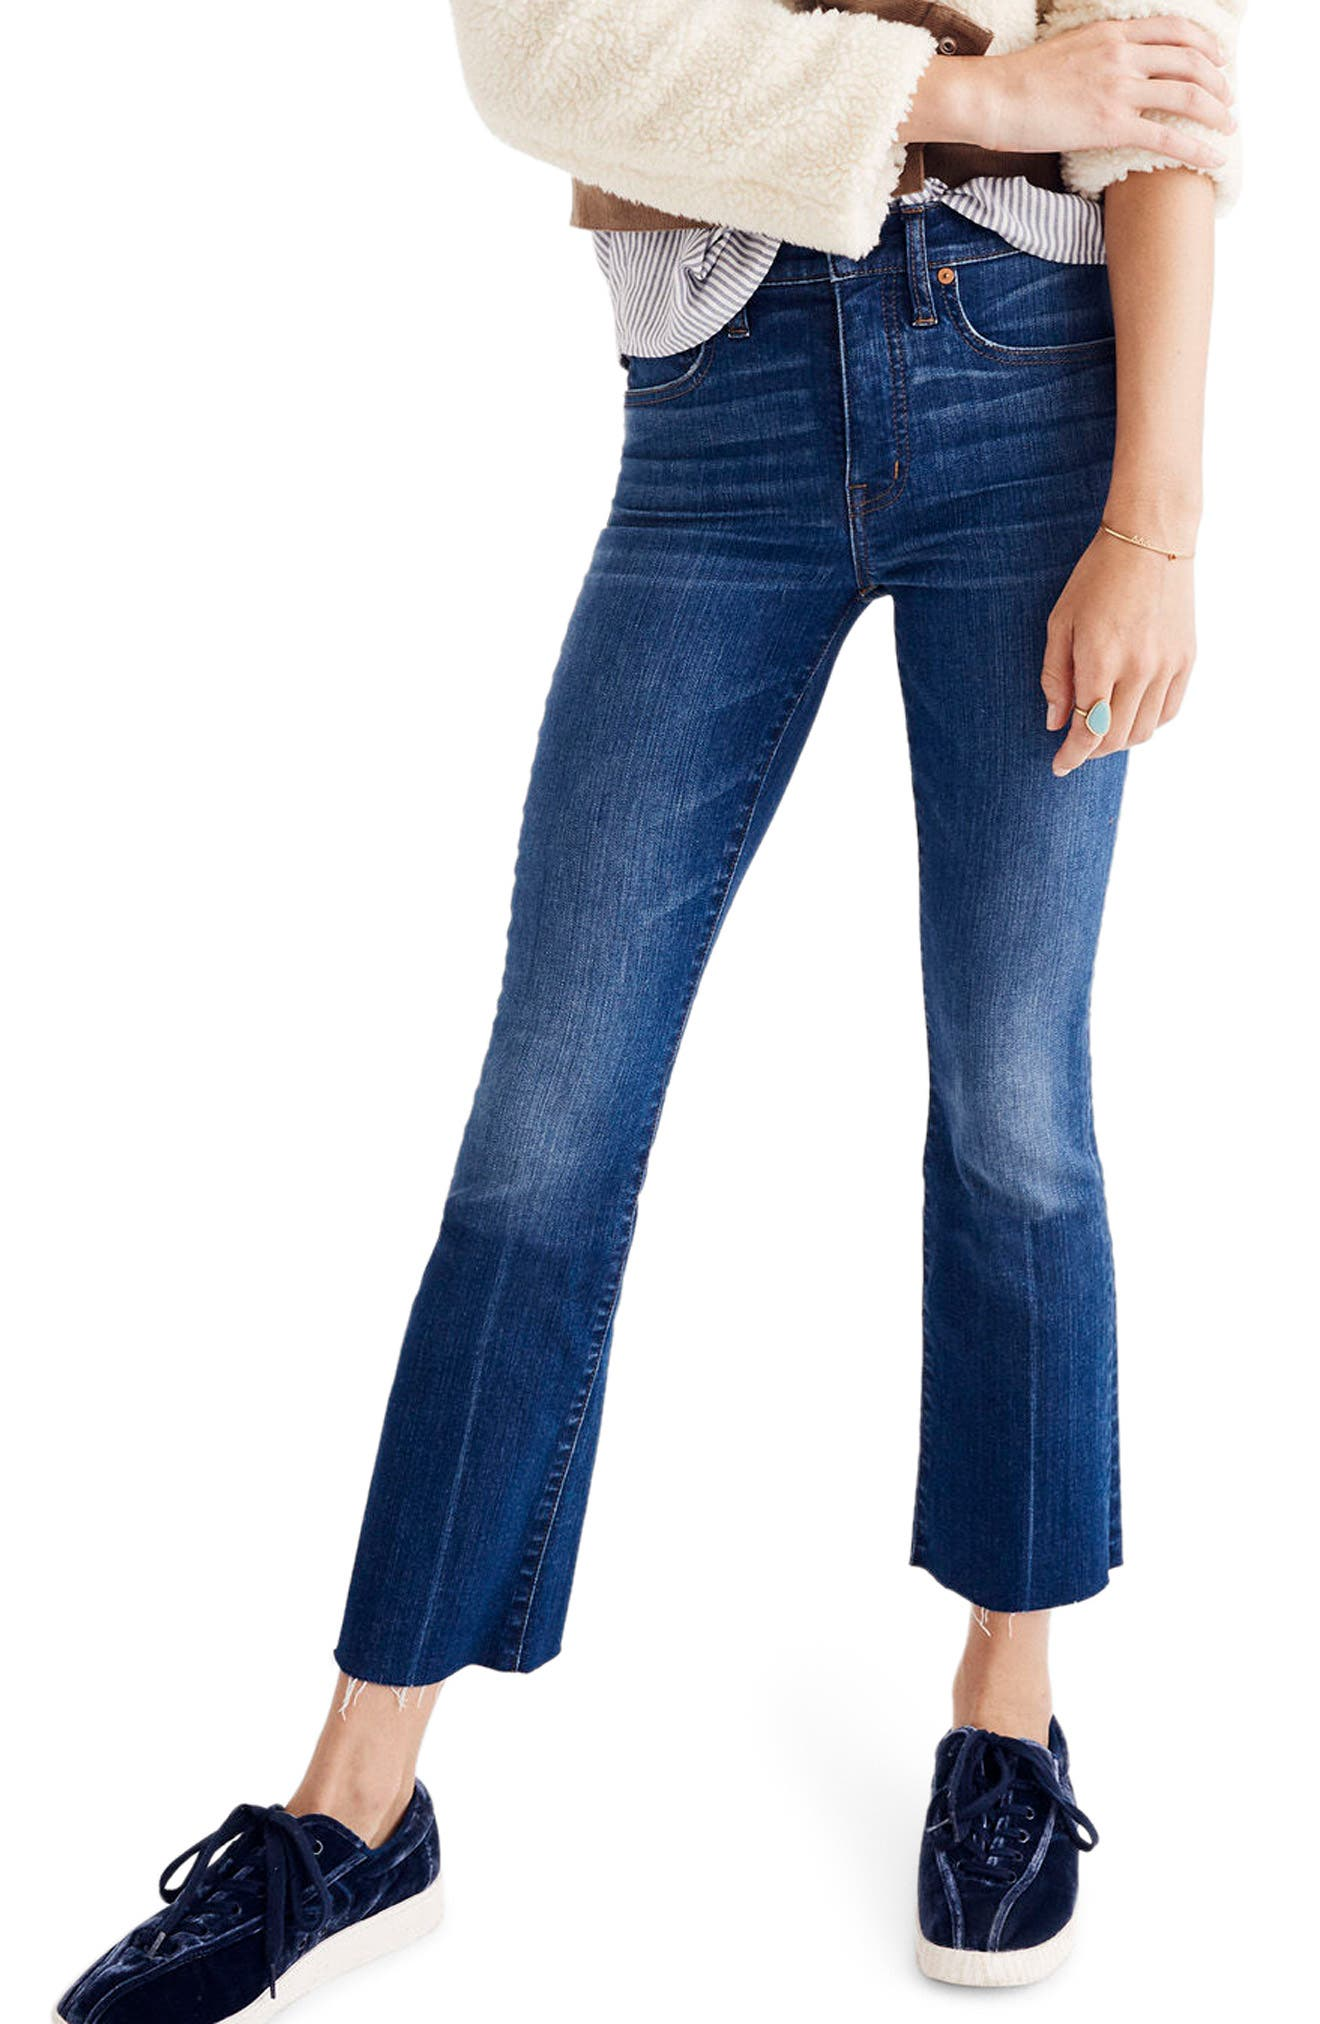 Cali Demi Boot Jeans,                             Main thumbnail 1, color,                             400